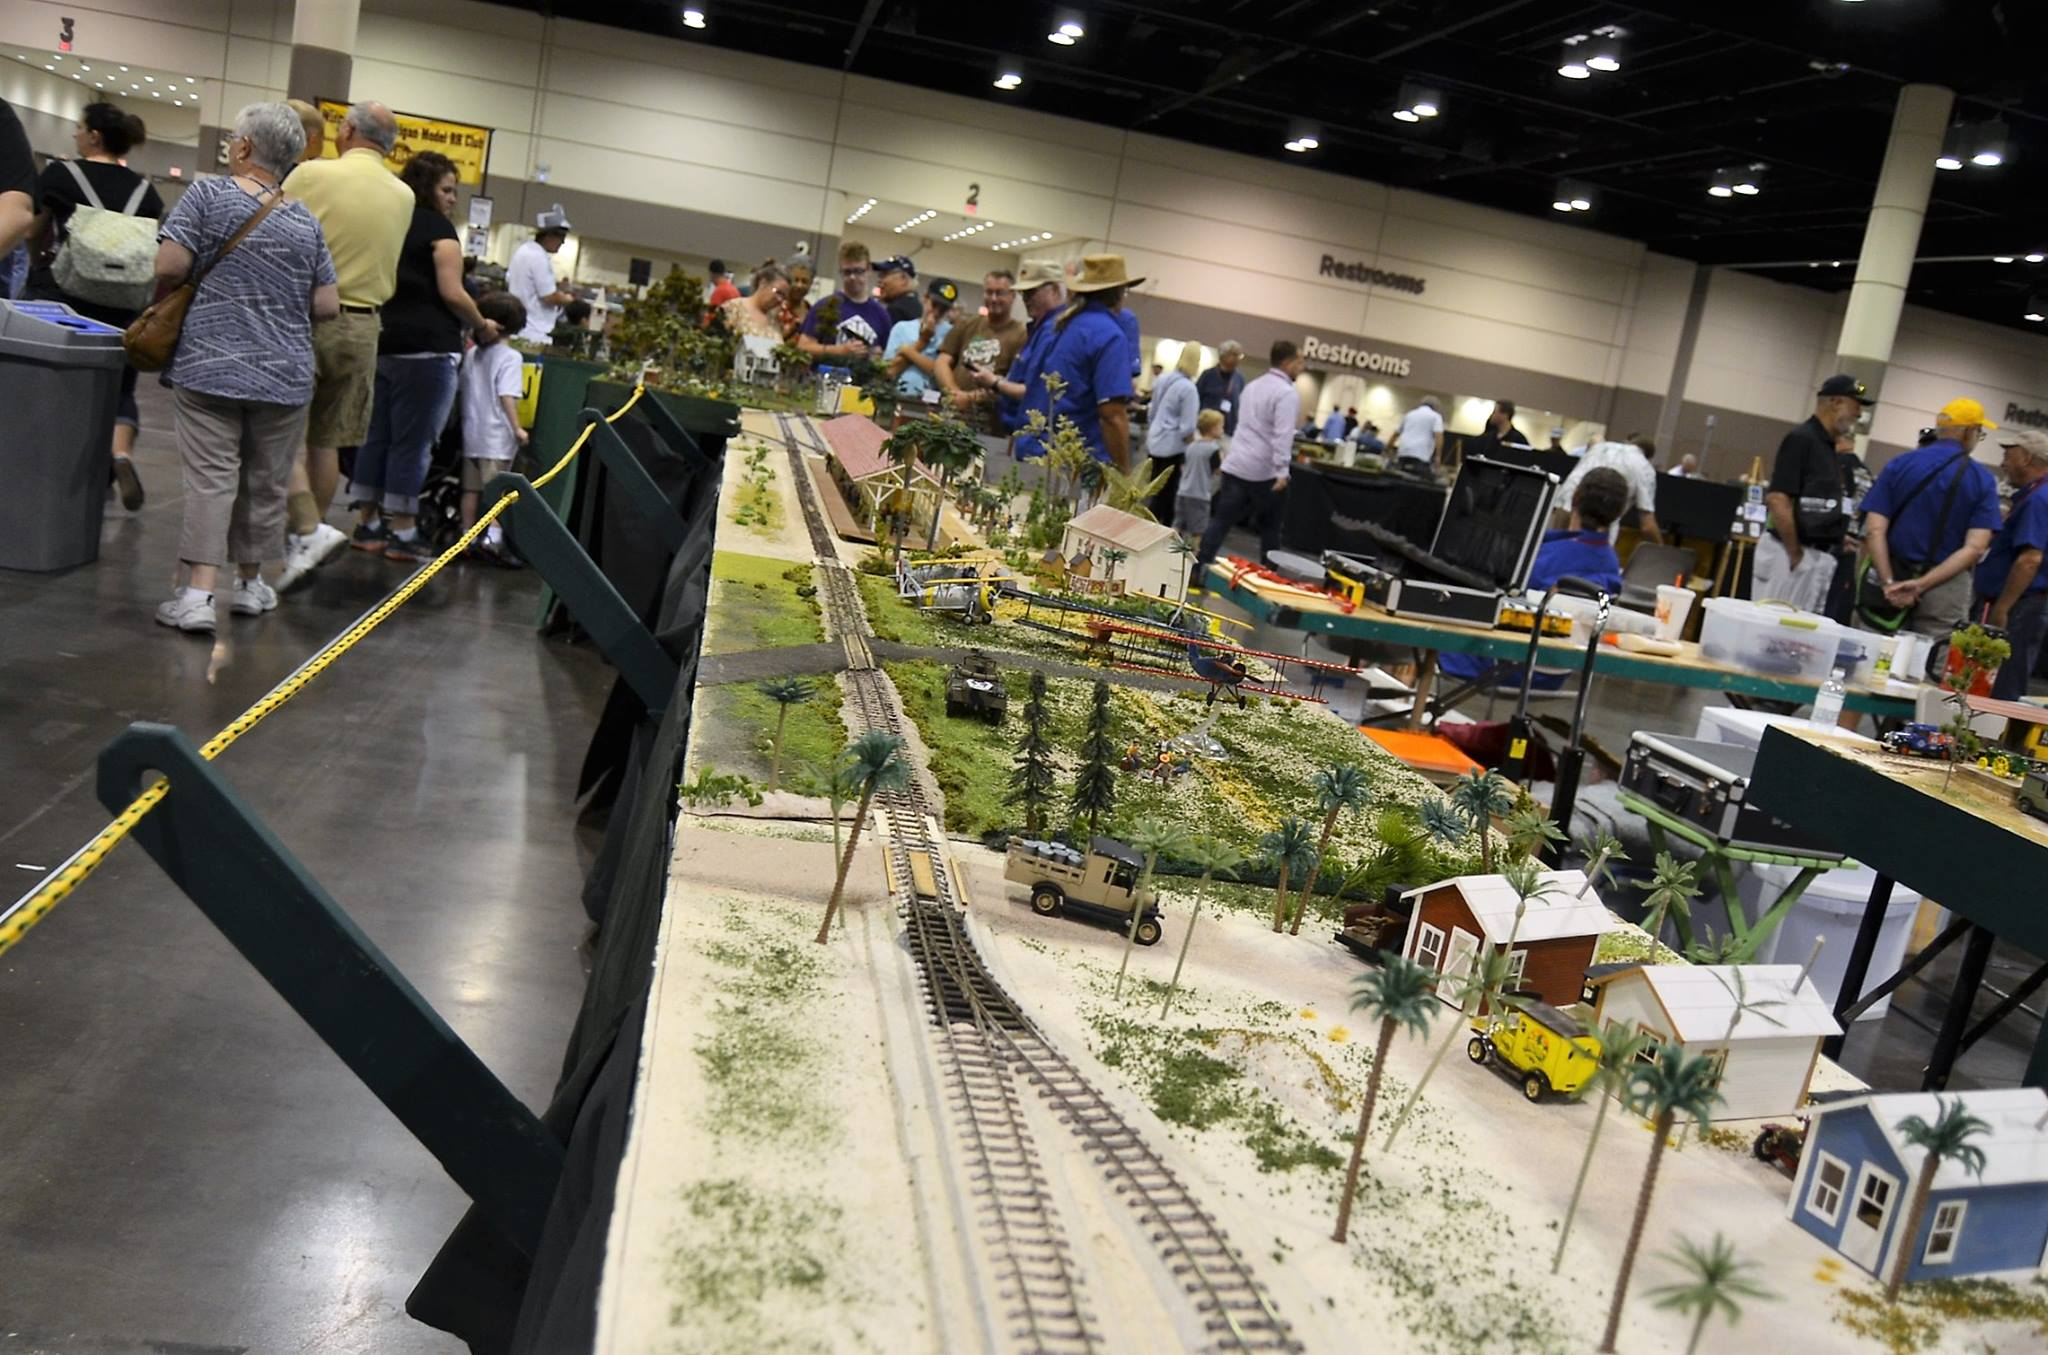 More of the NTS 2017 layout.